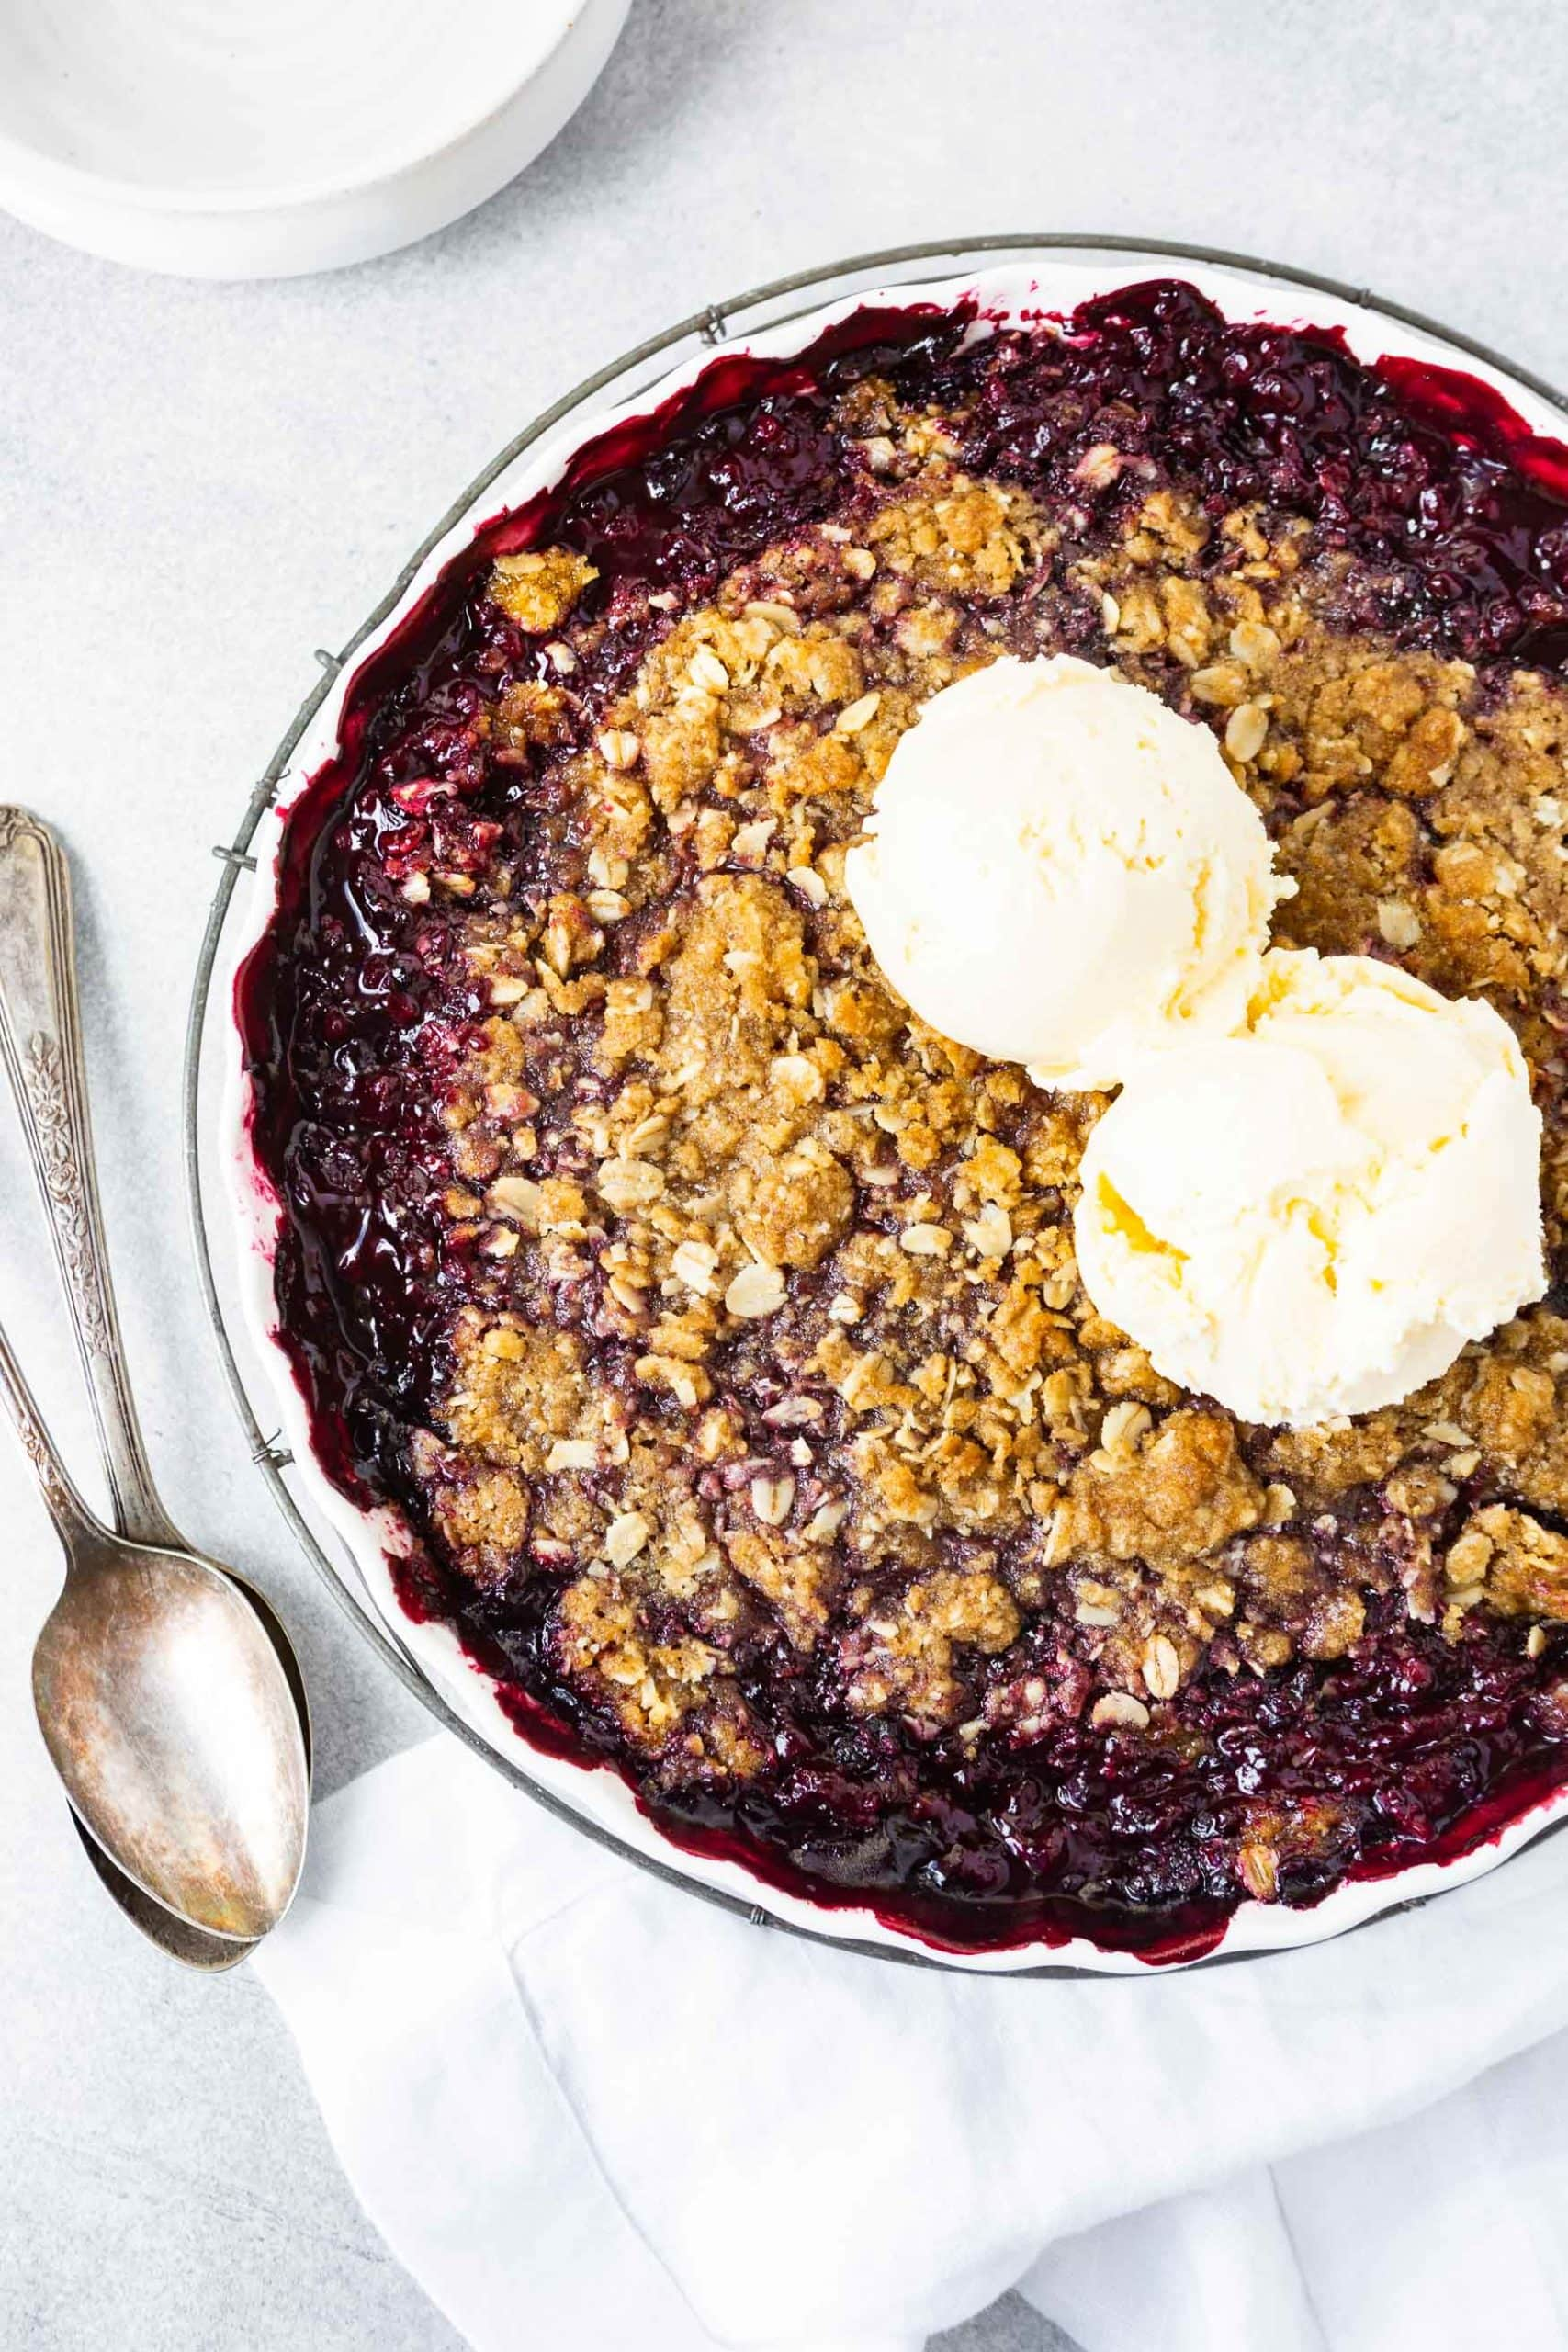 a photo of a whole marionberry crisp in a circular dish topped with two scoops of vanilla ice cream and spoon laying next to the pan.